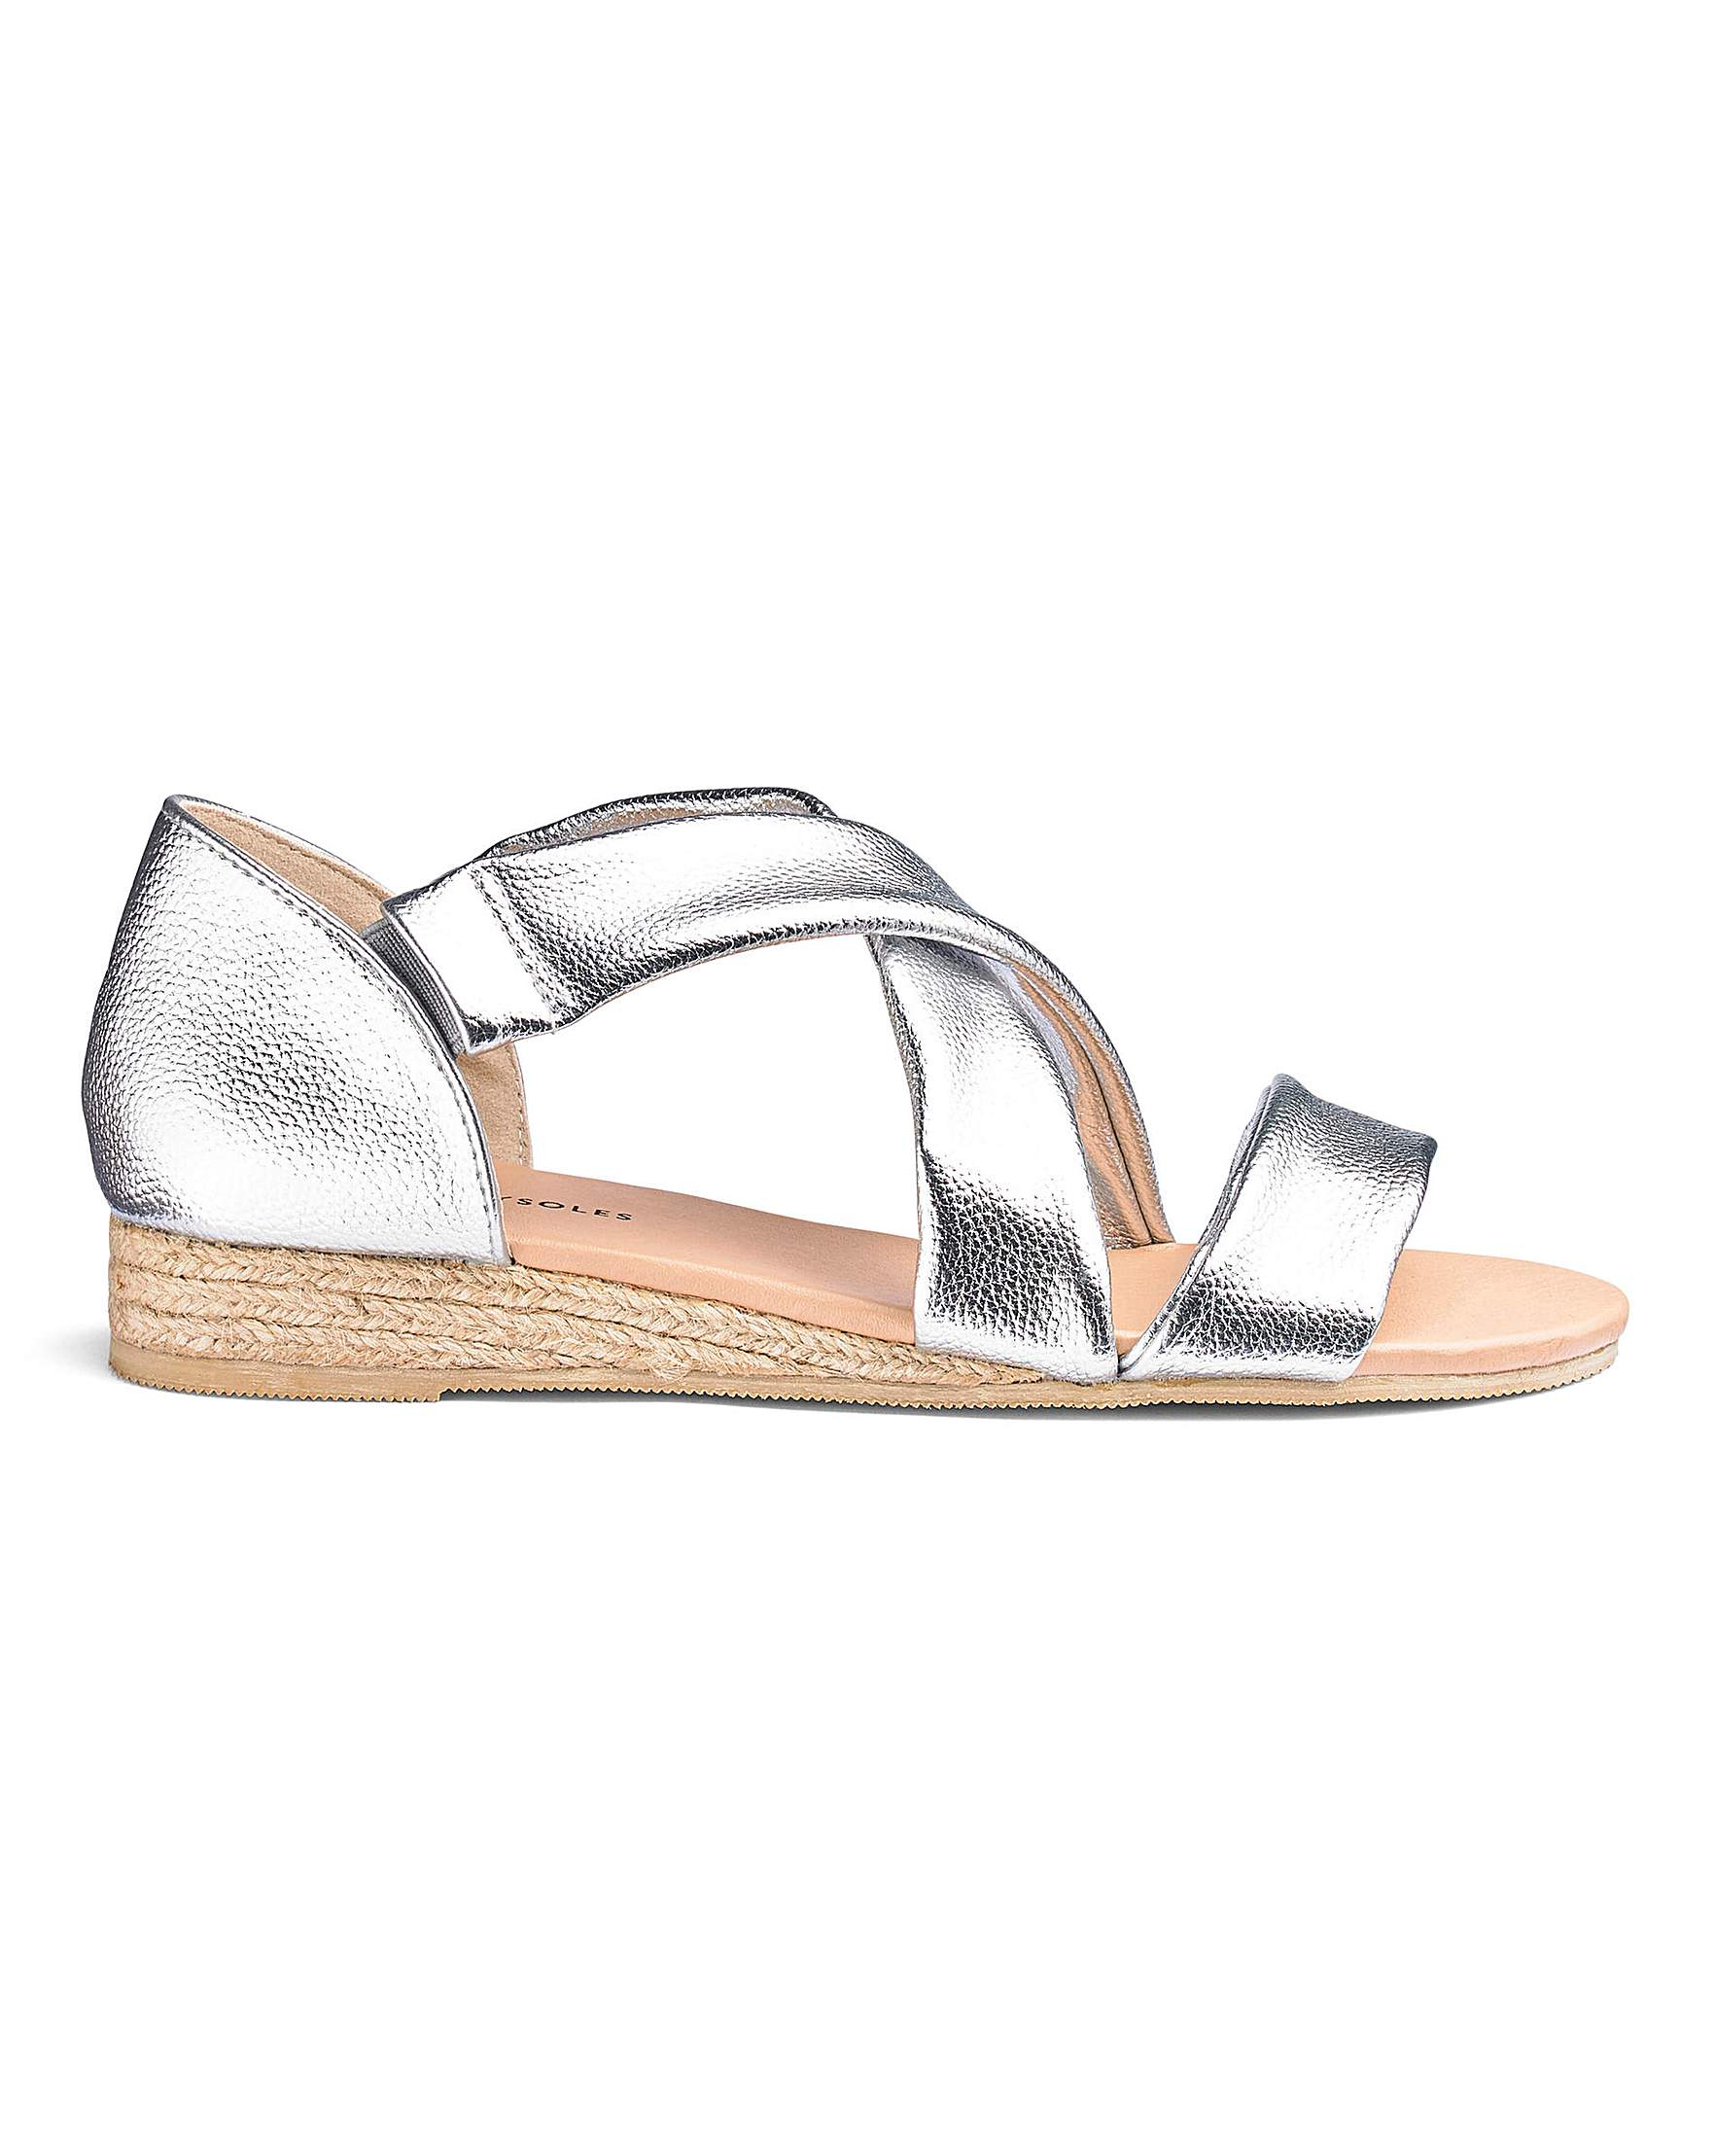 cba8ee400f0 Strappy Low Wedge Espadrille Sandals Wide E Fit